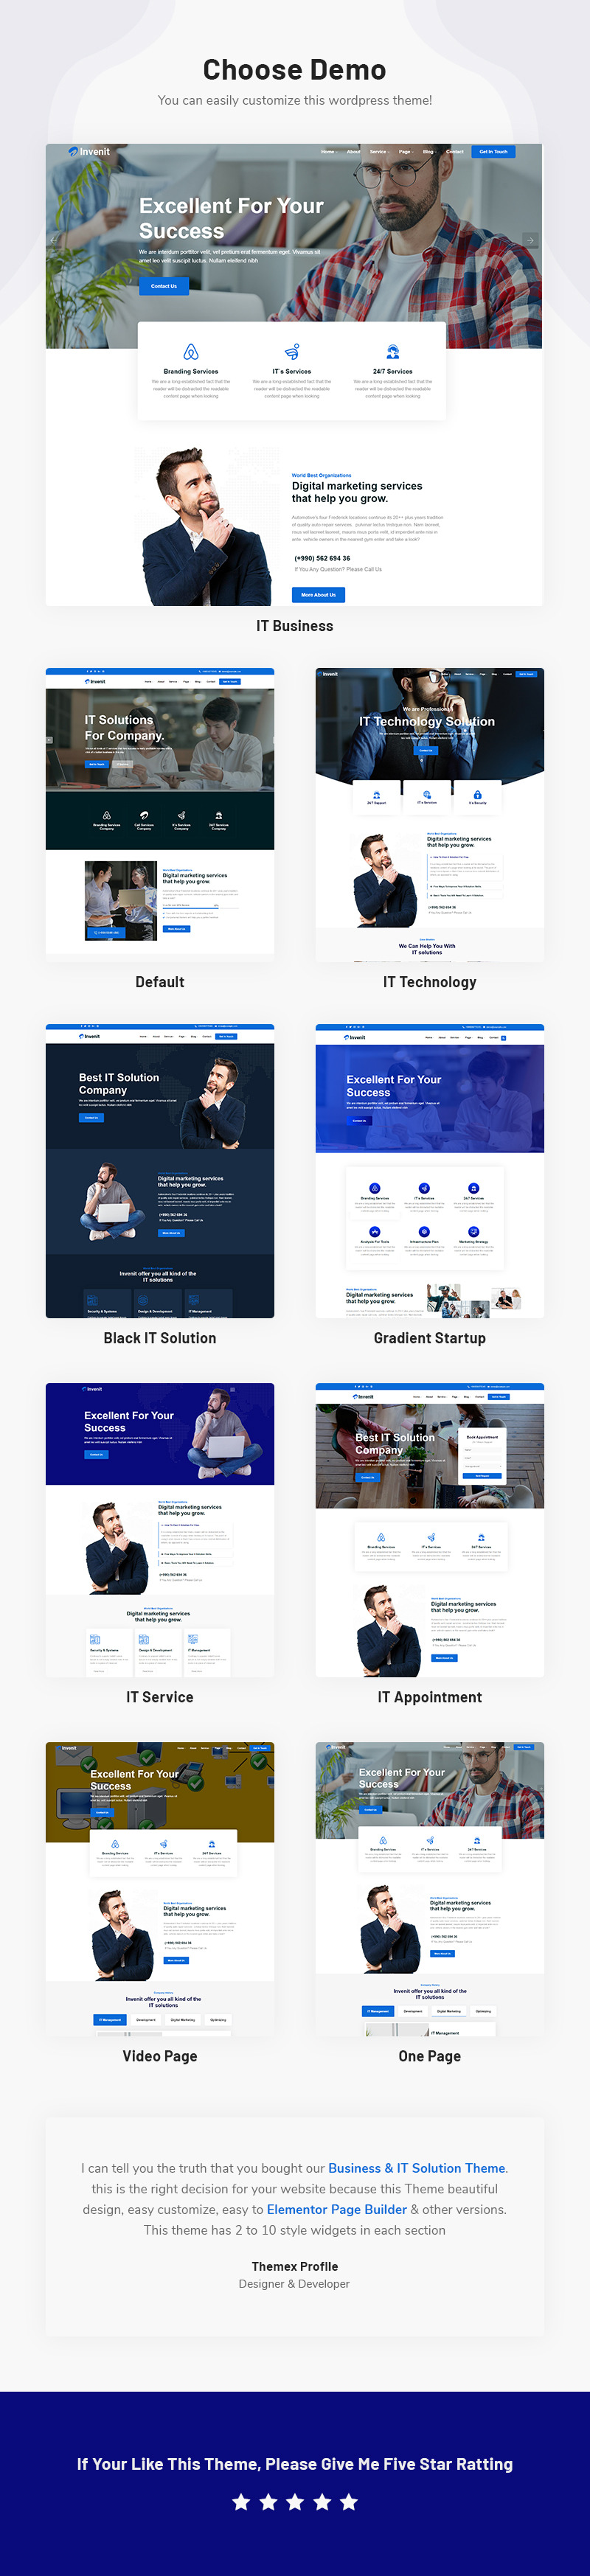 Invenit - Multipurpose Business and IT Solution Responsive WordPress Theme - Features Image 1